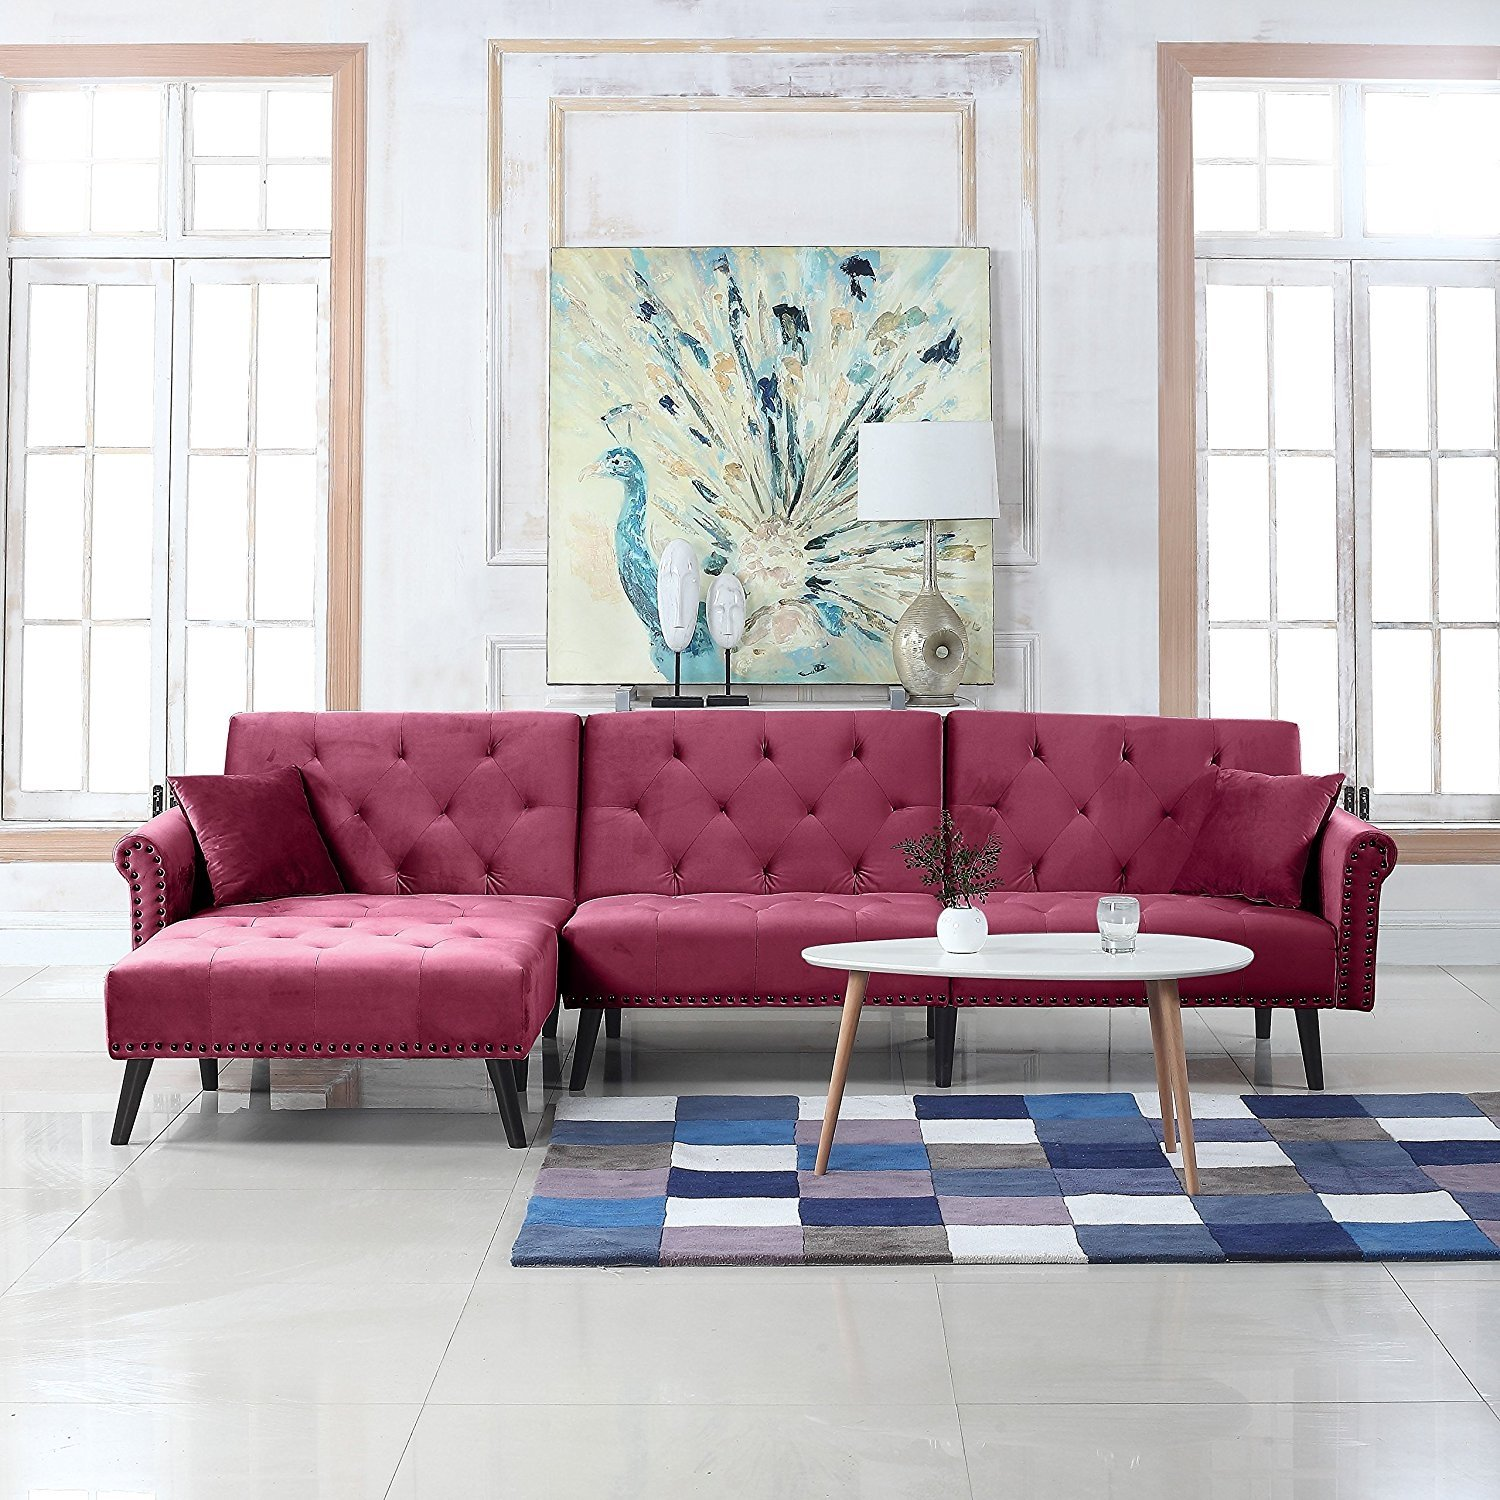 Details about Mid Century Style Velvet Sleeper Futon, Living Room L Shape  Sofa, Rose Red